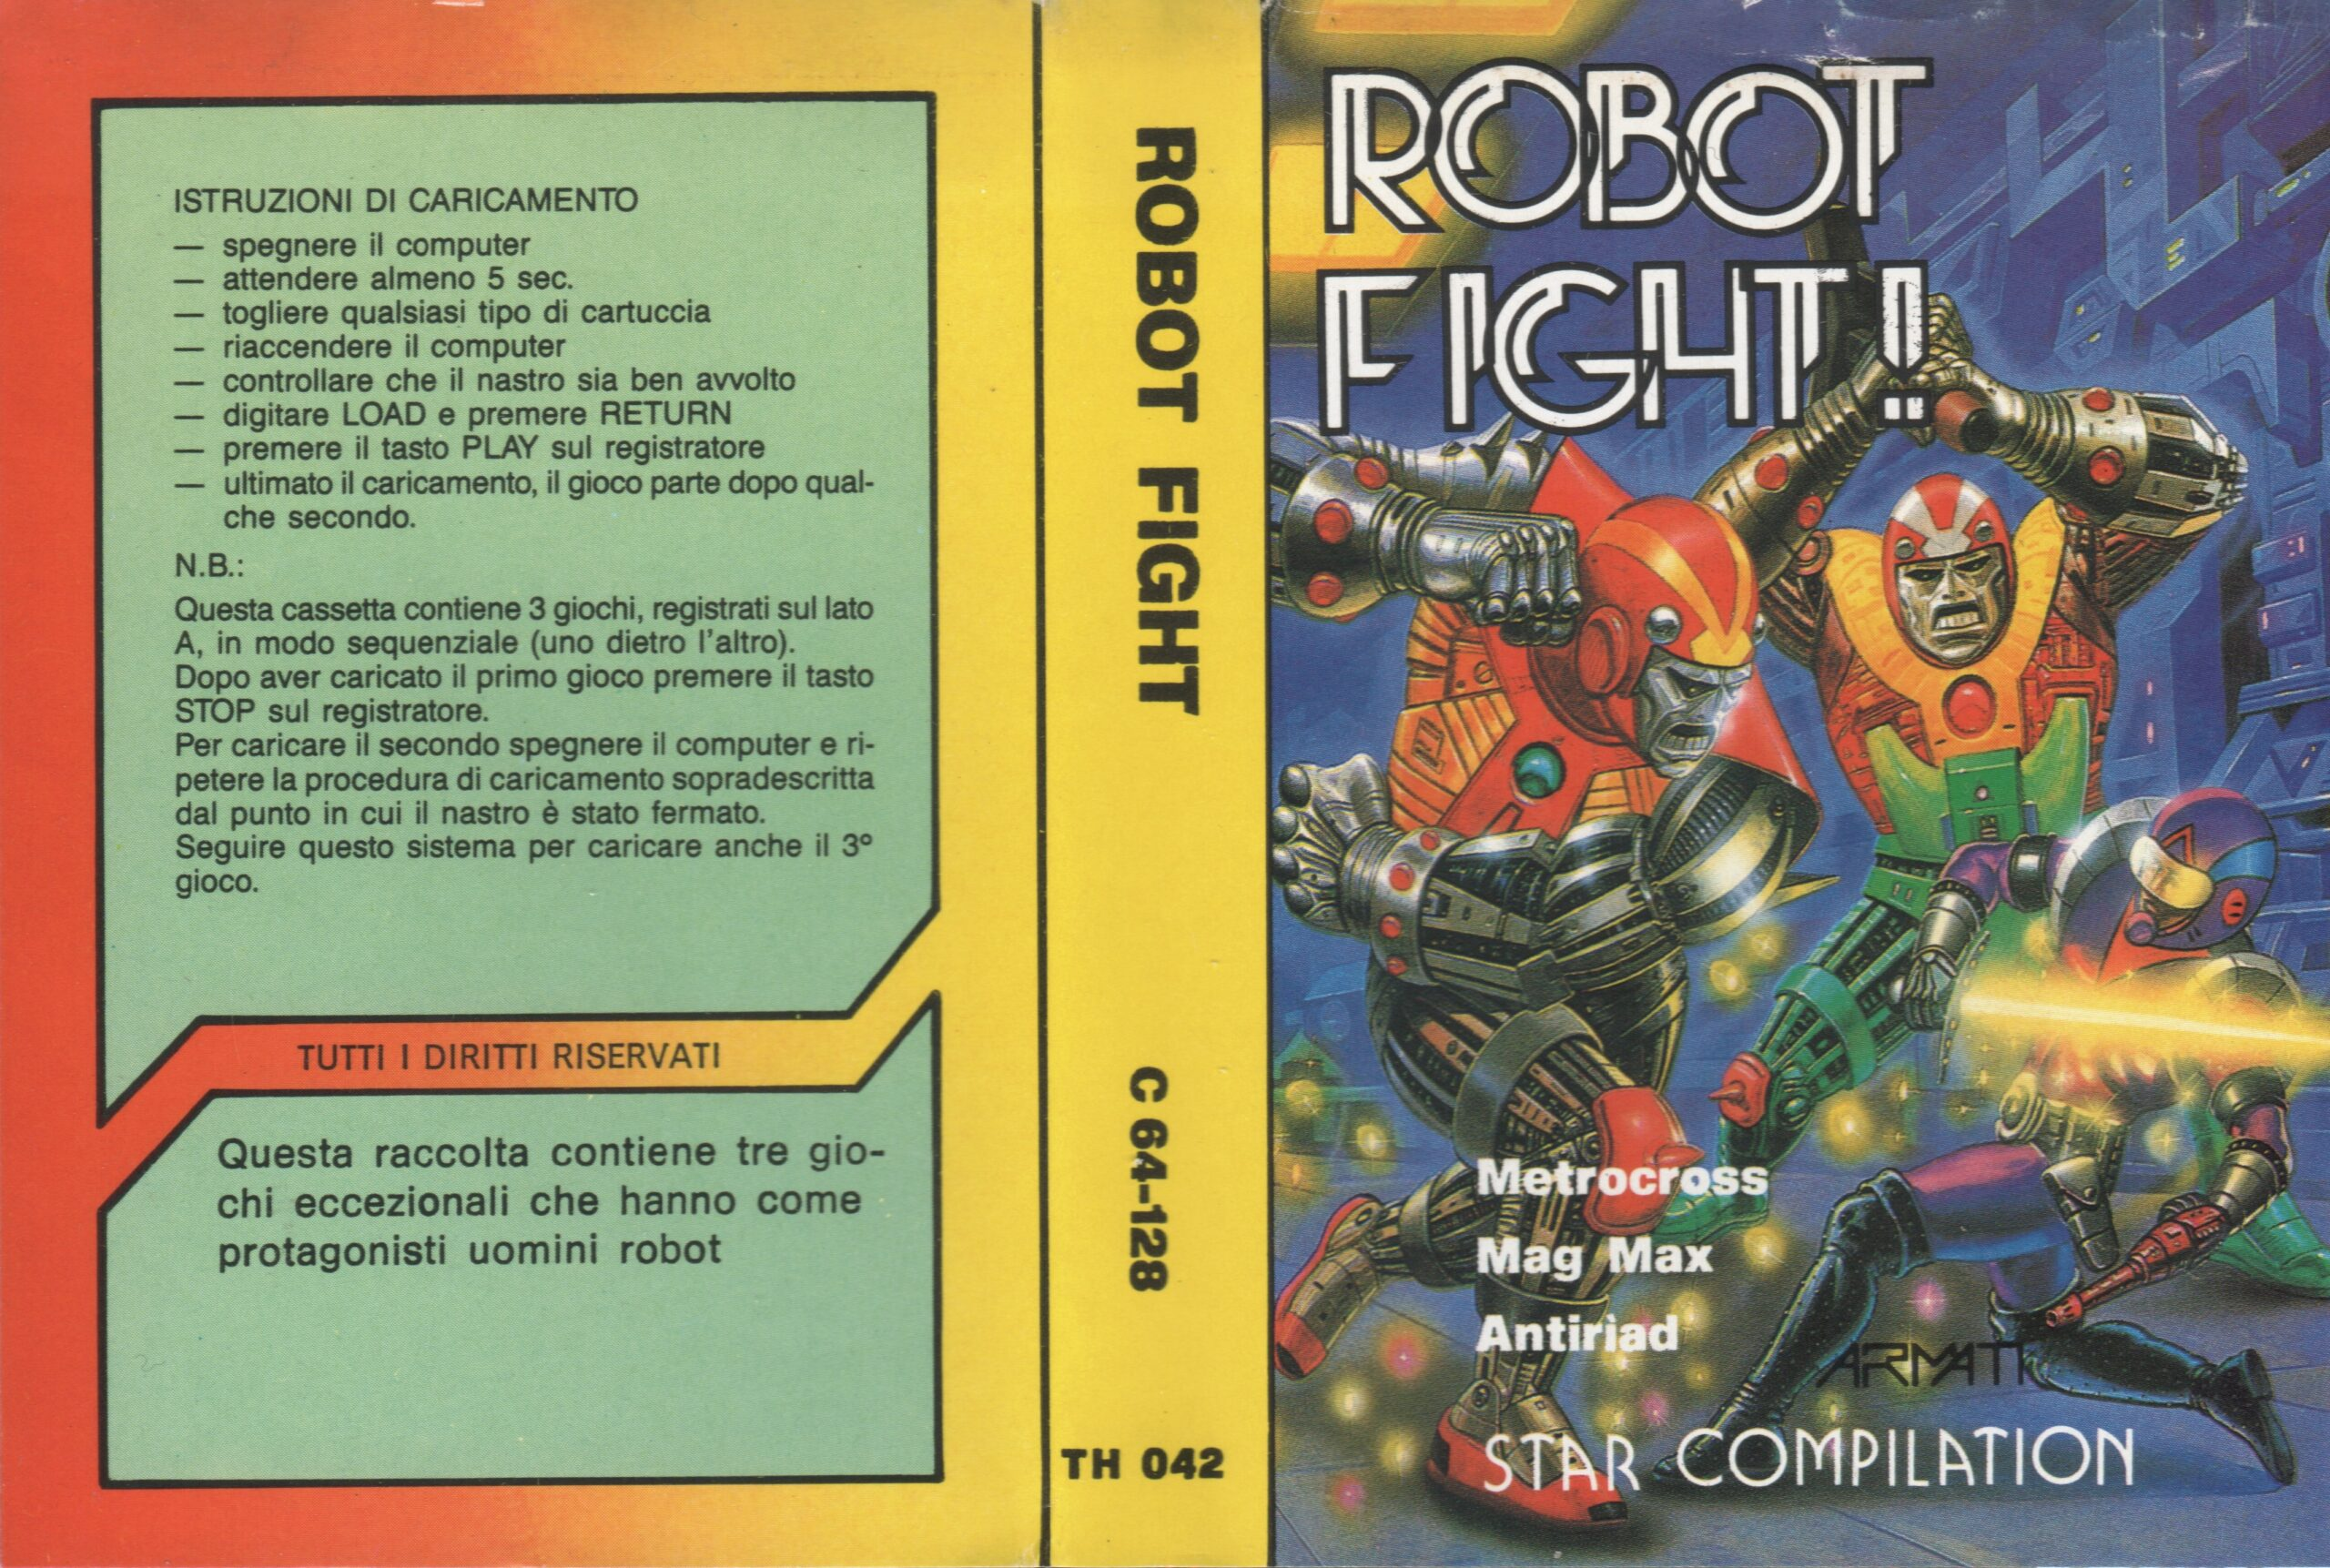 ROBOT FIGHT TH 042 COLLECTION